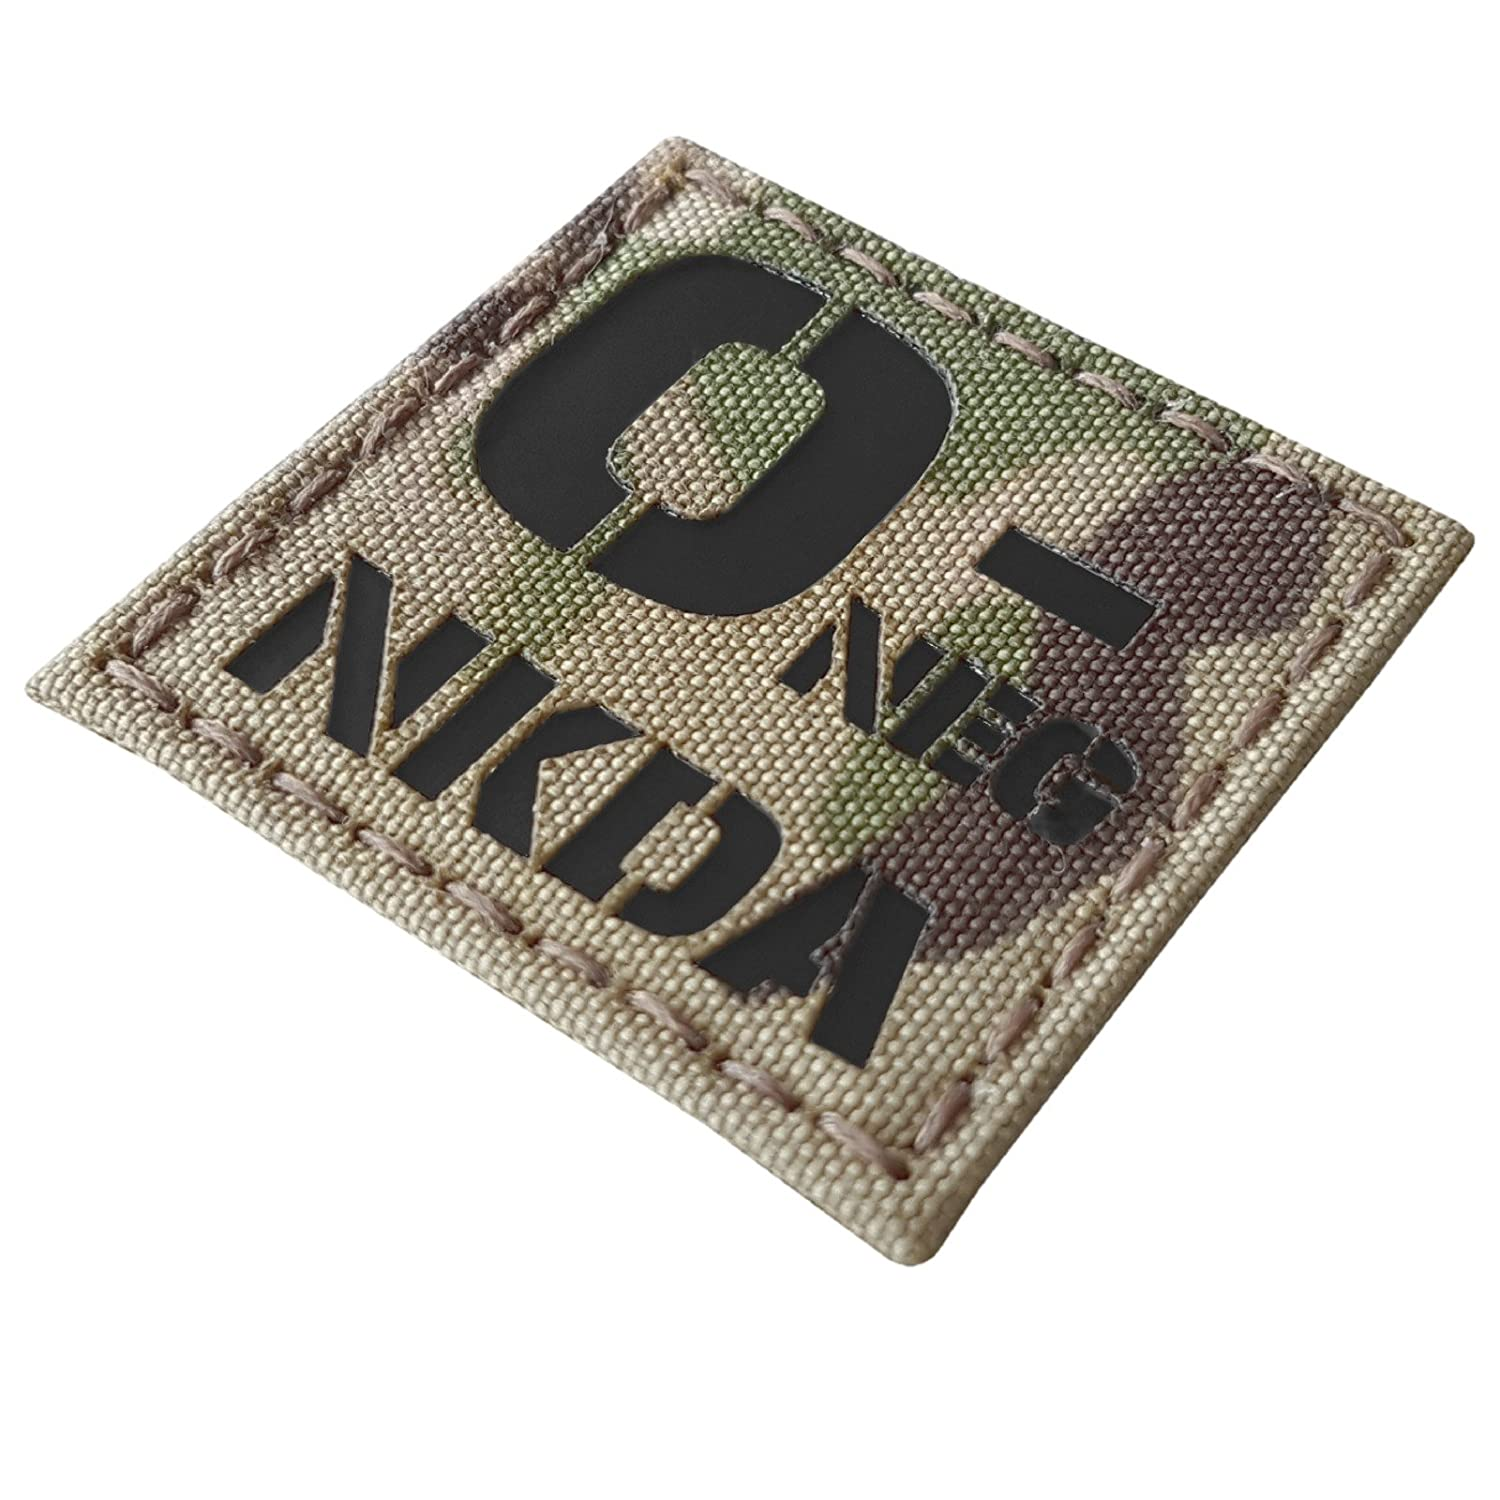 Blood Type 2x2 Tactical Morale Hook/&Loop Patch Multicam Infrared IR ONEG NKDA O